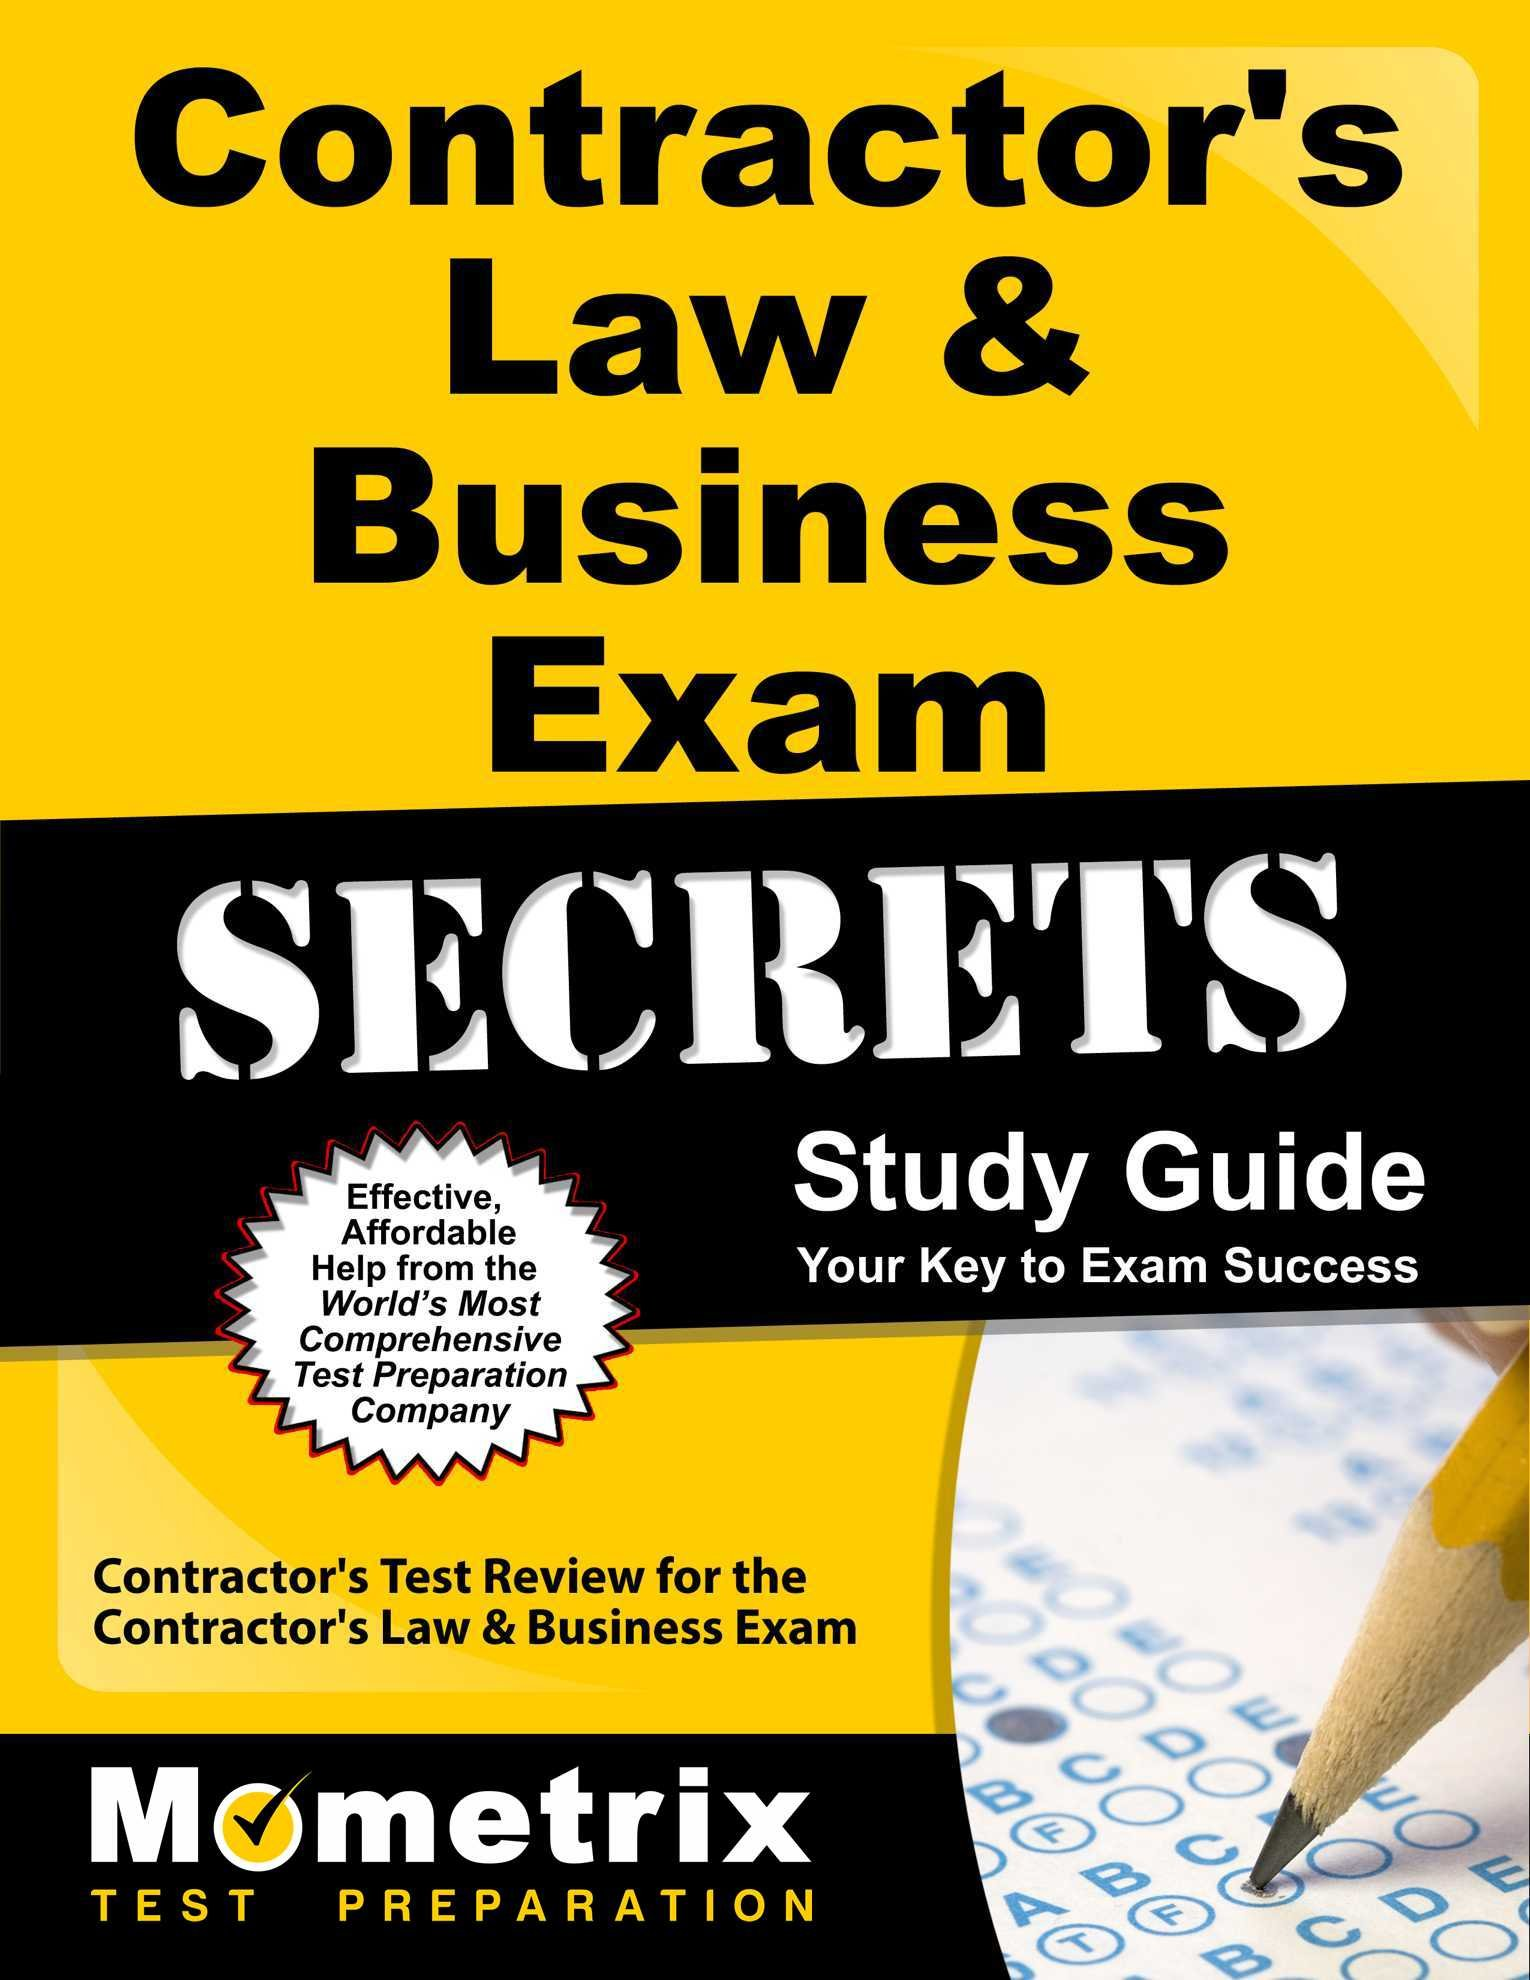 Contractor's Law & Business Exam Secrets Study Guide: Contractor's Test Review for the Contractor's Law & Business Exam